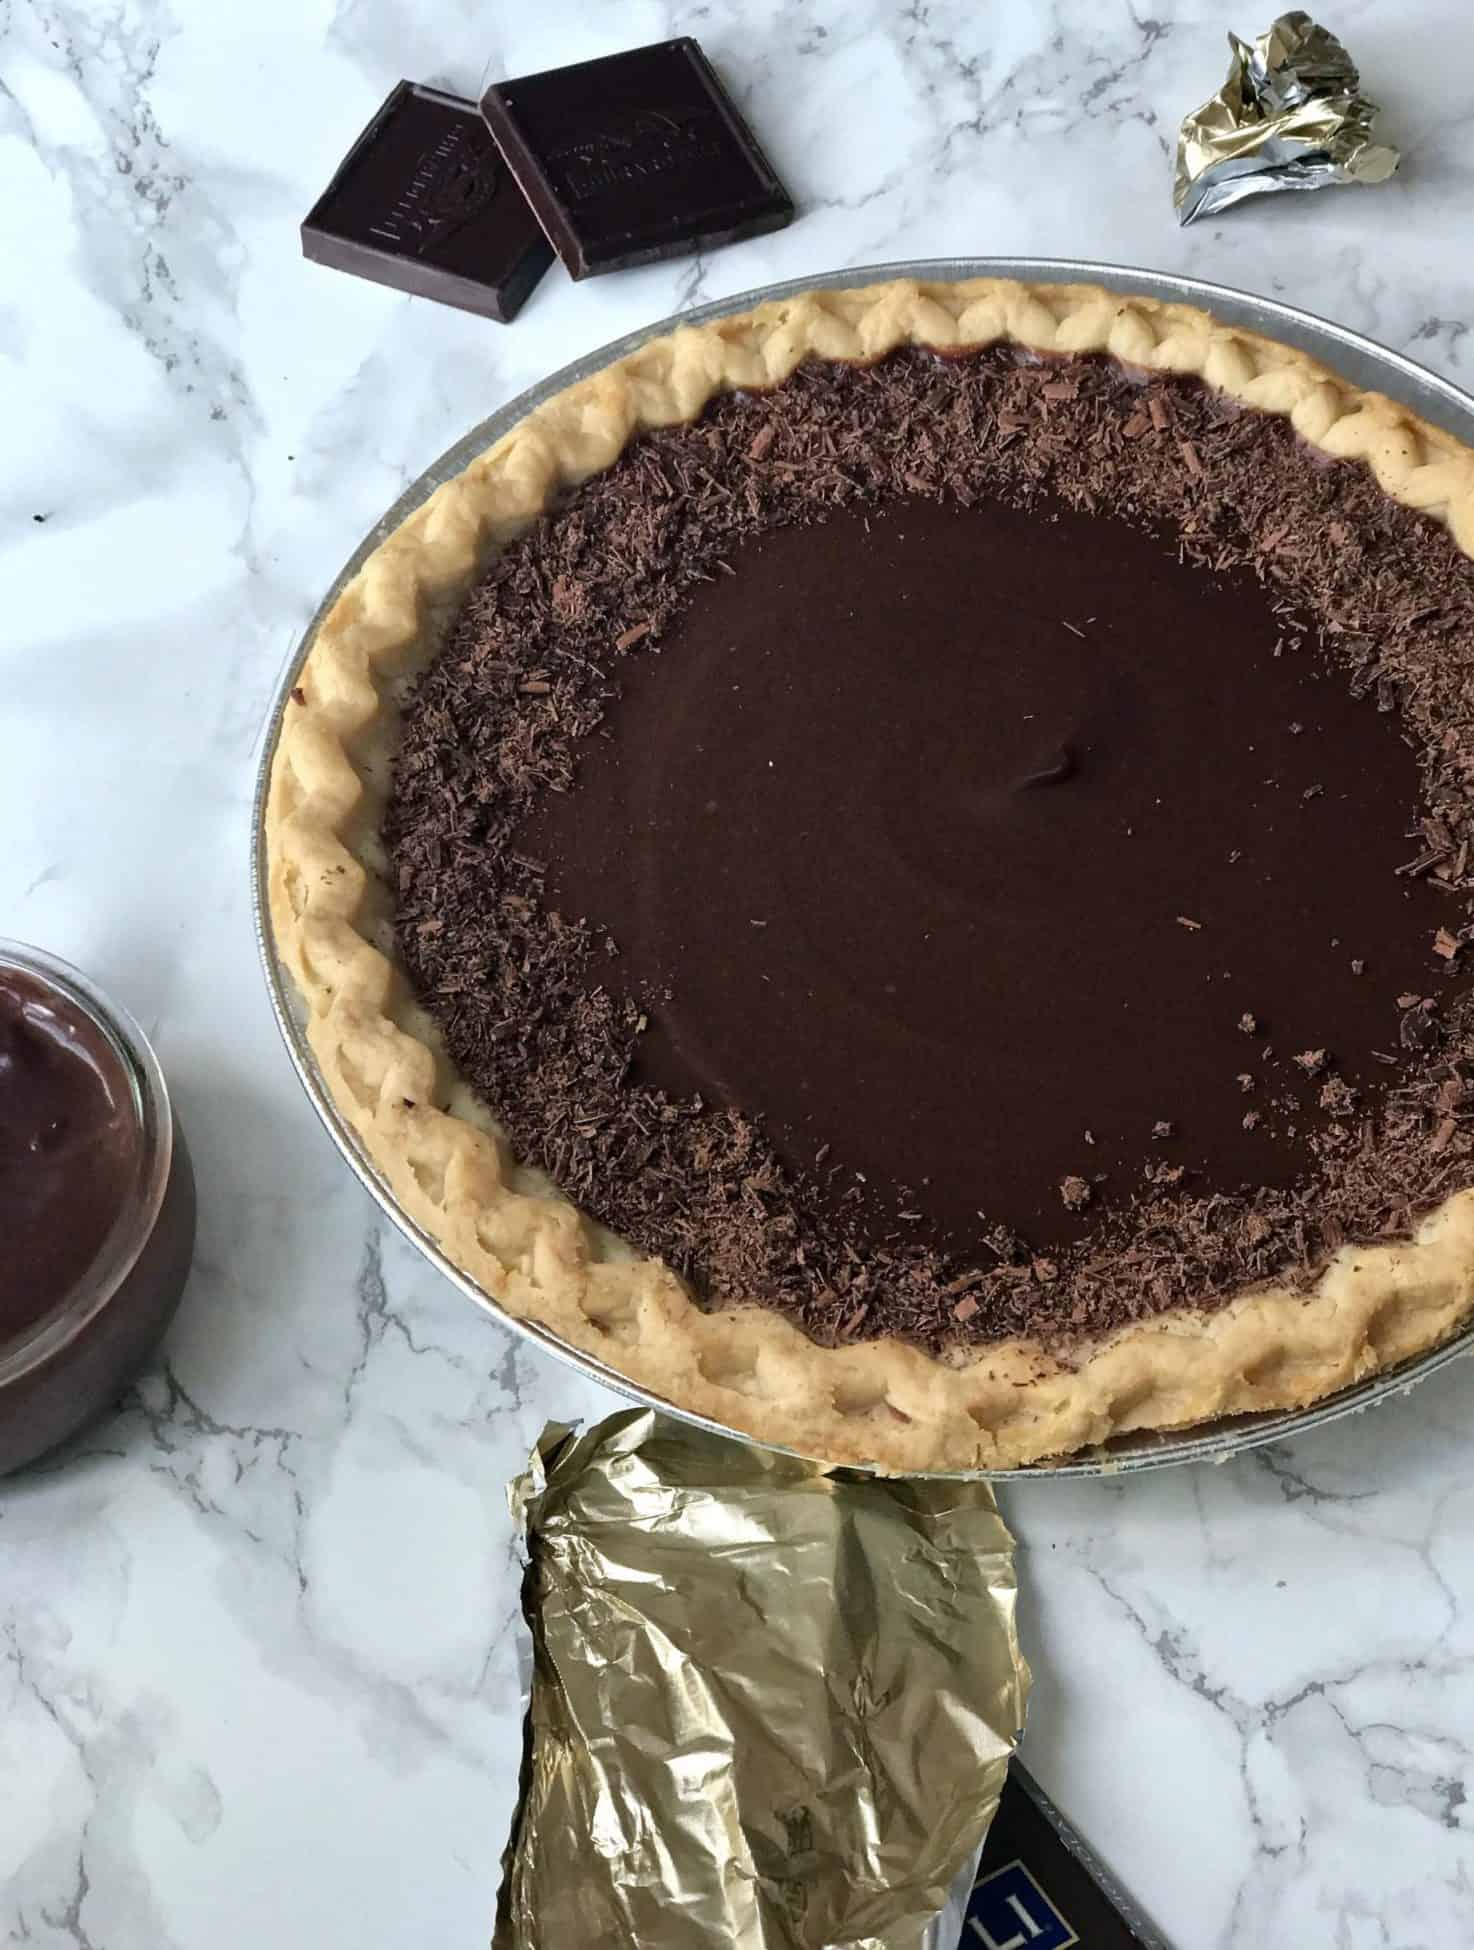 Chocolate Pudding Pie Recipe - An Unblurred Lady